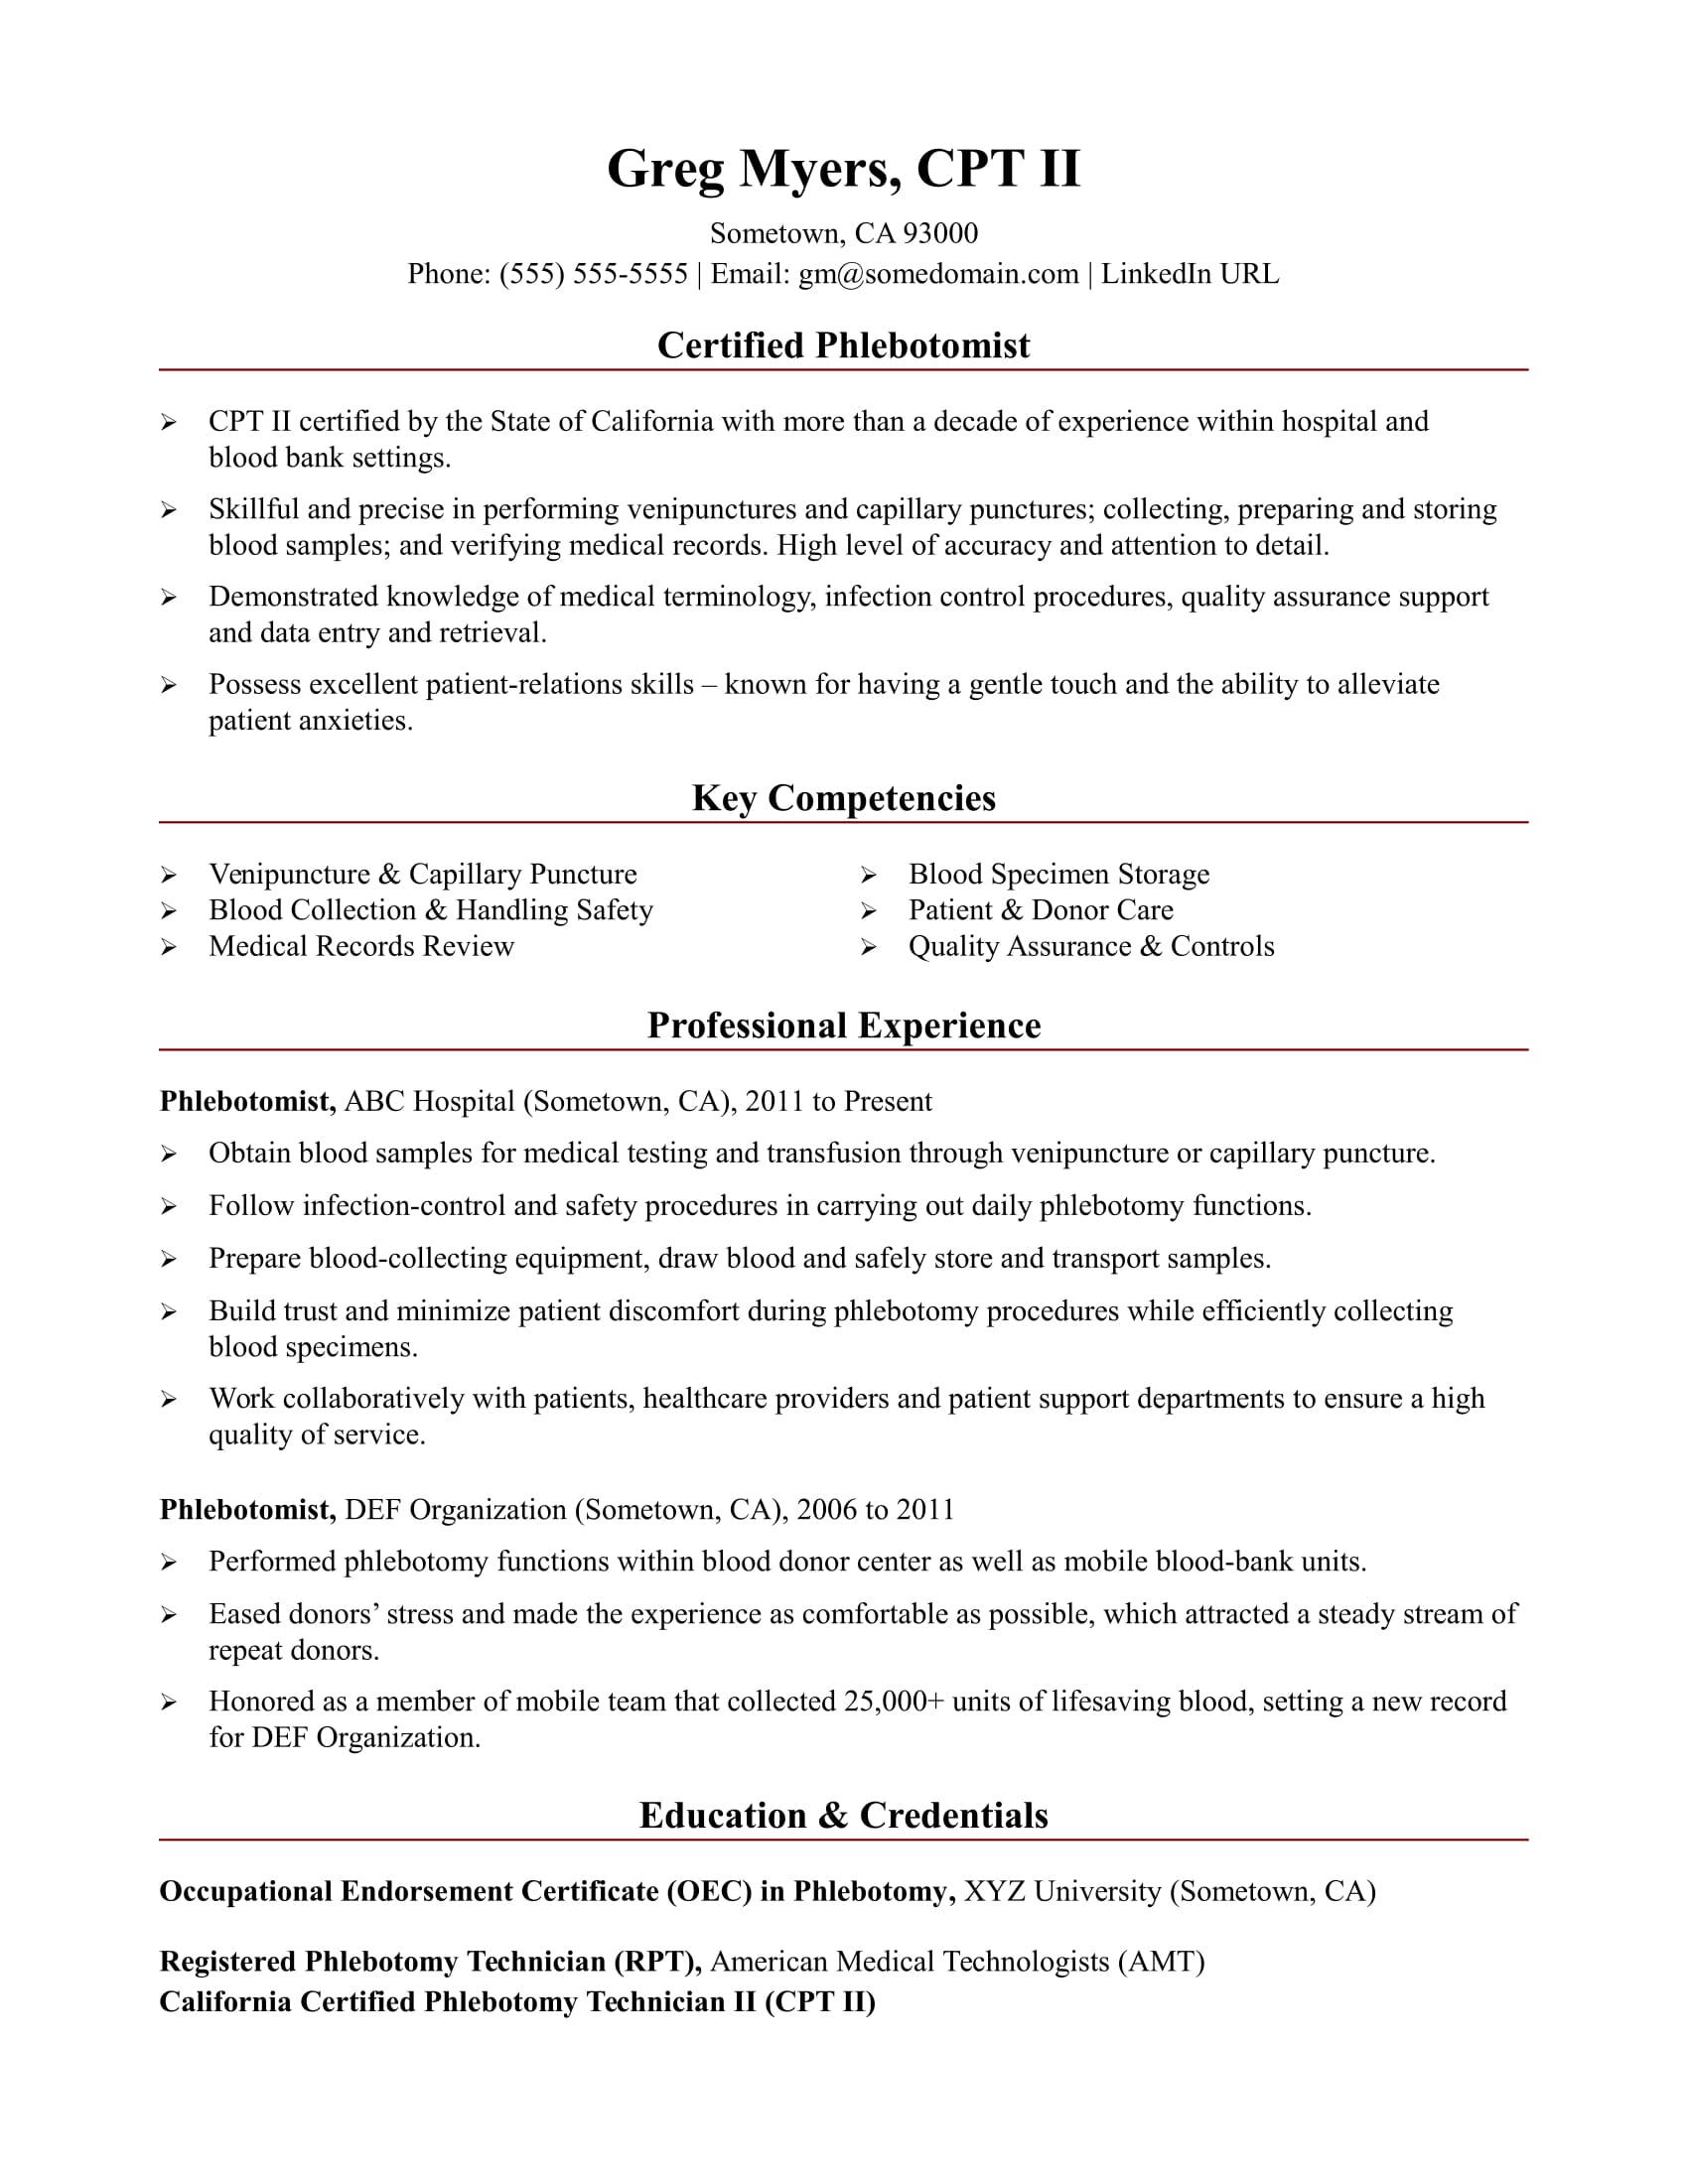 Job Description Of A Phlebotomist On Resume Phlebotomist Resume Sample Monster